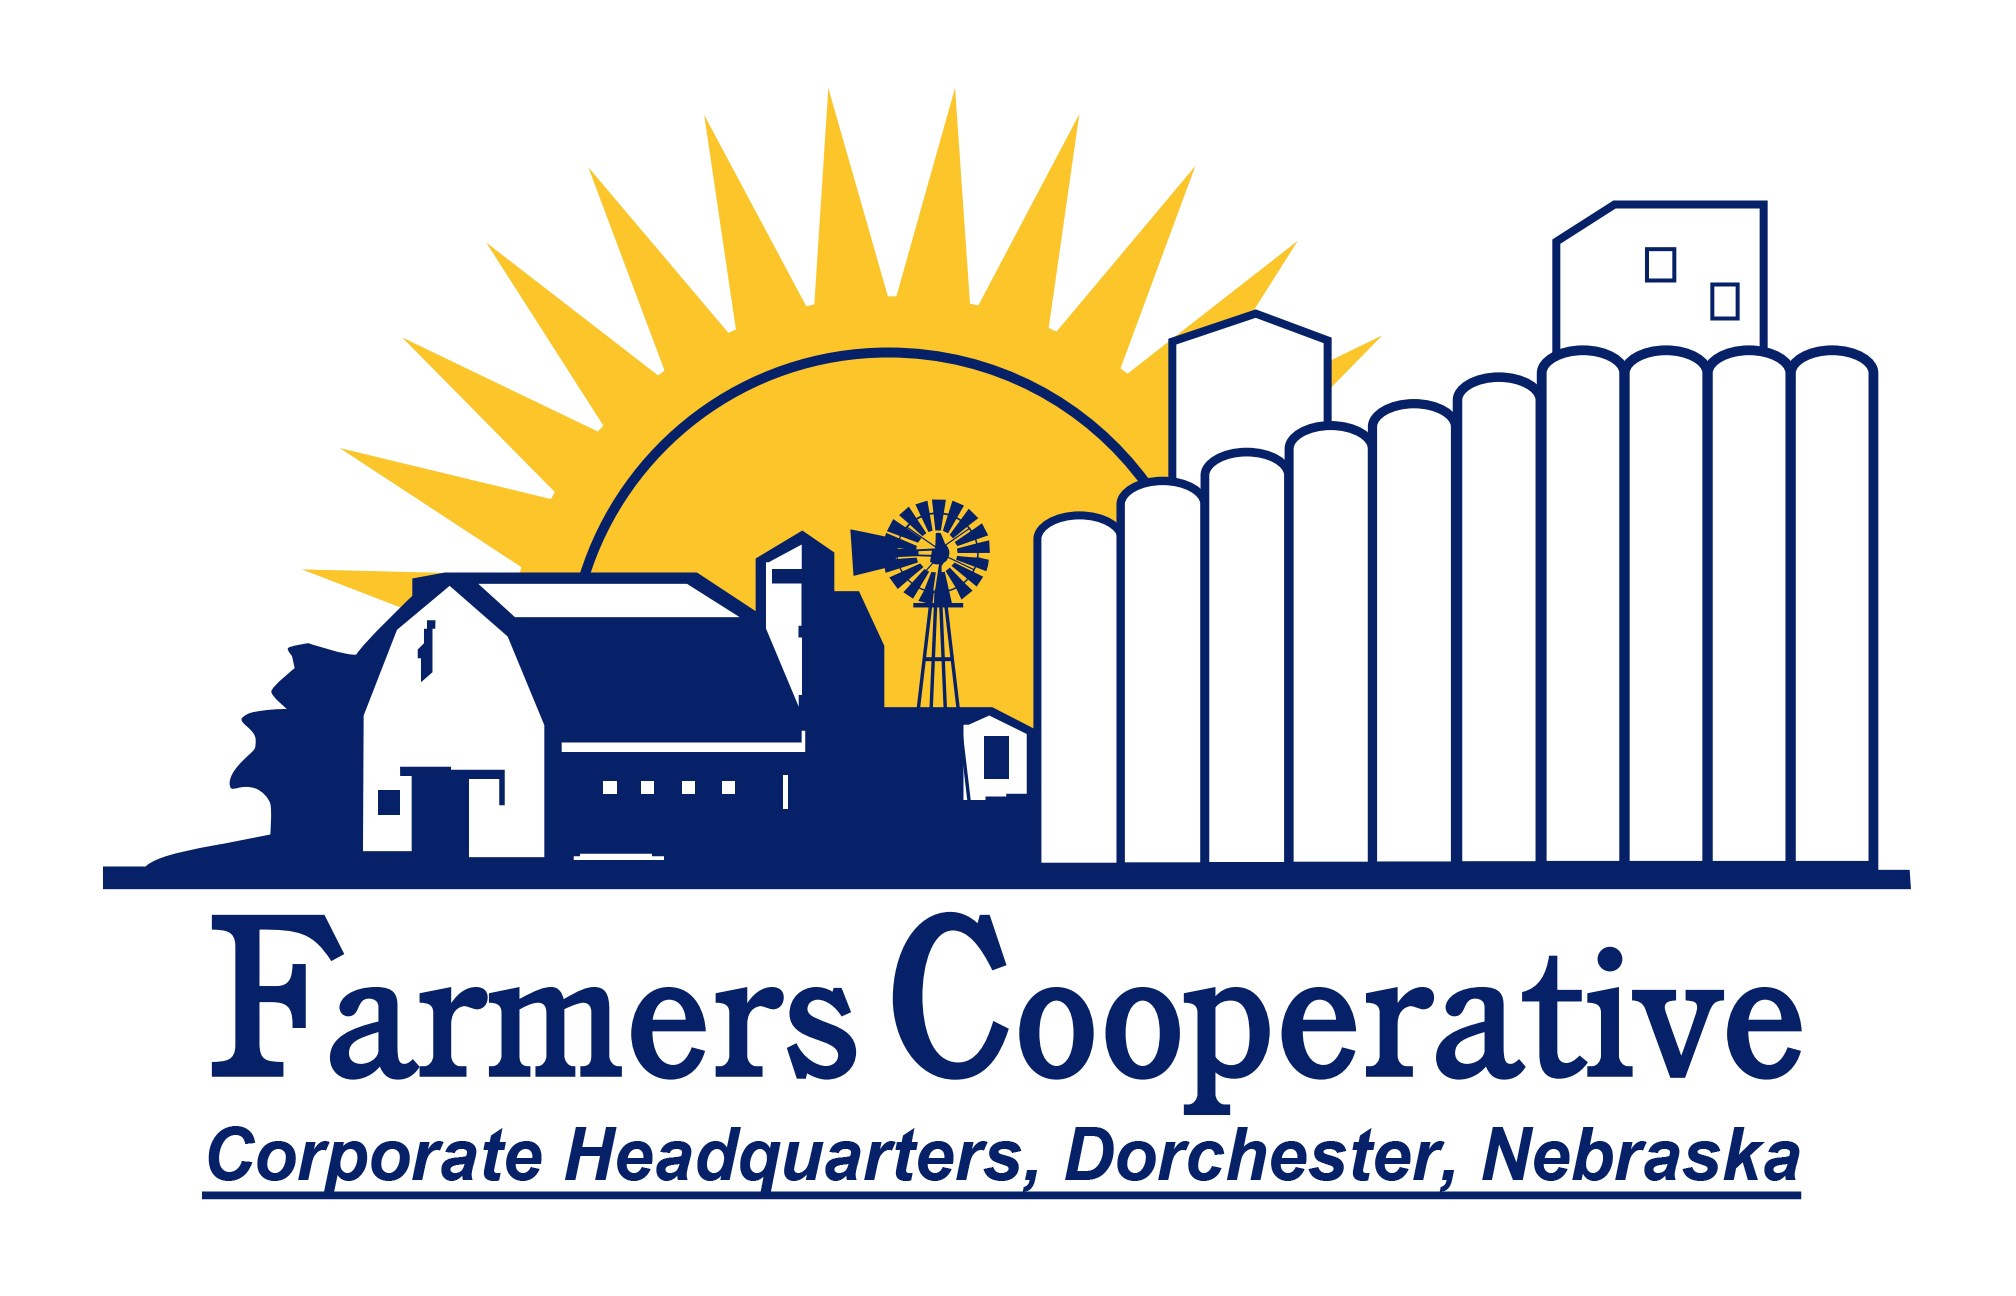 Farmers Cooperative donates to local FFA Chapter Grants